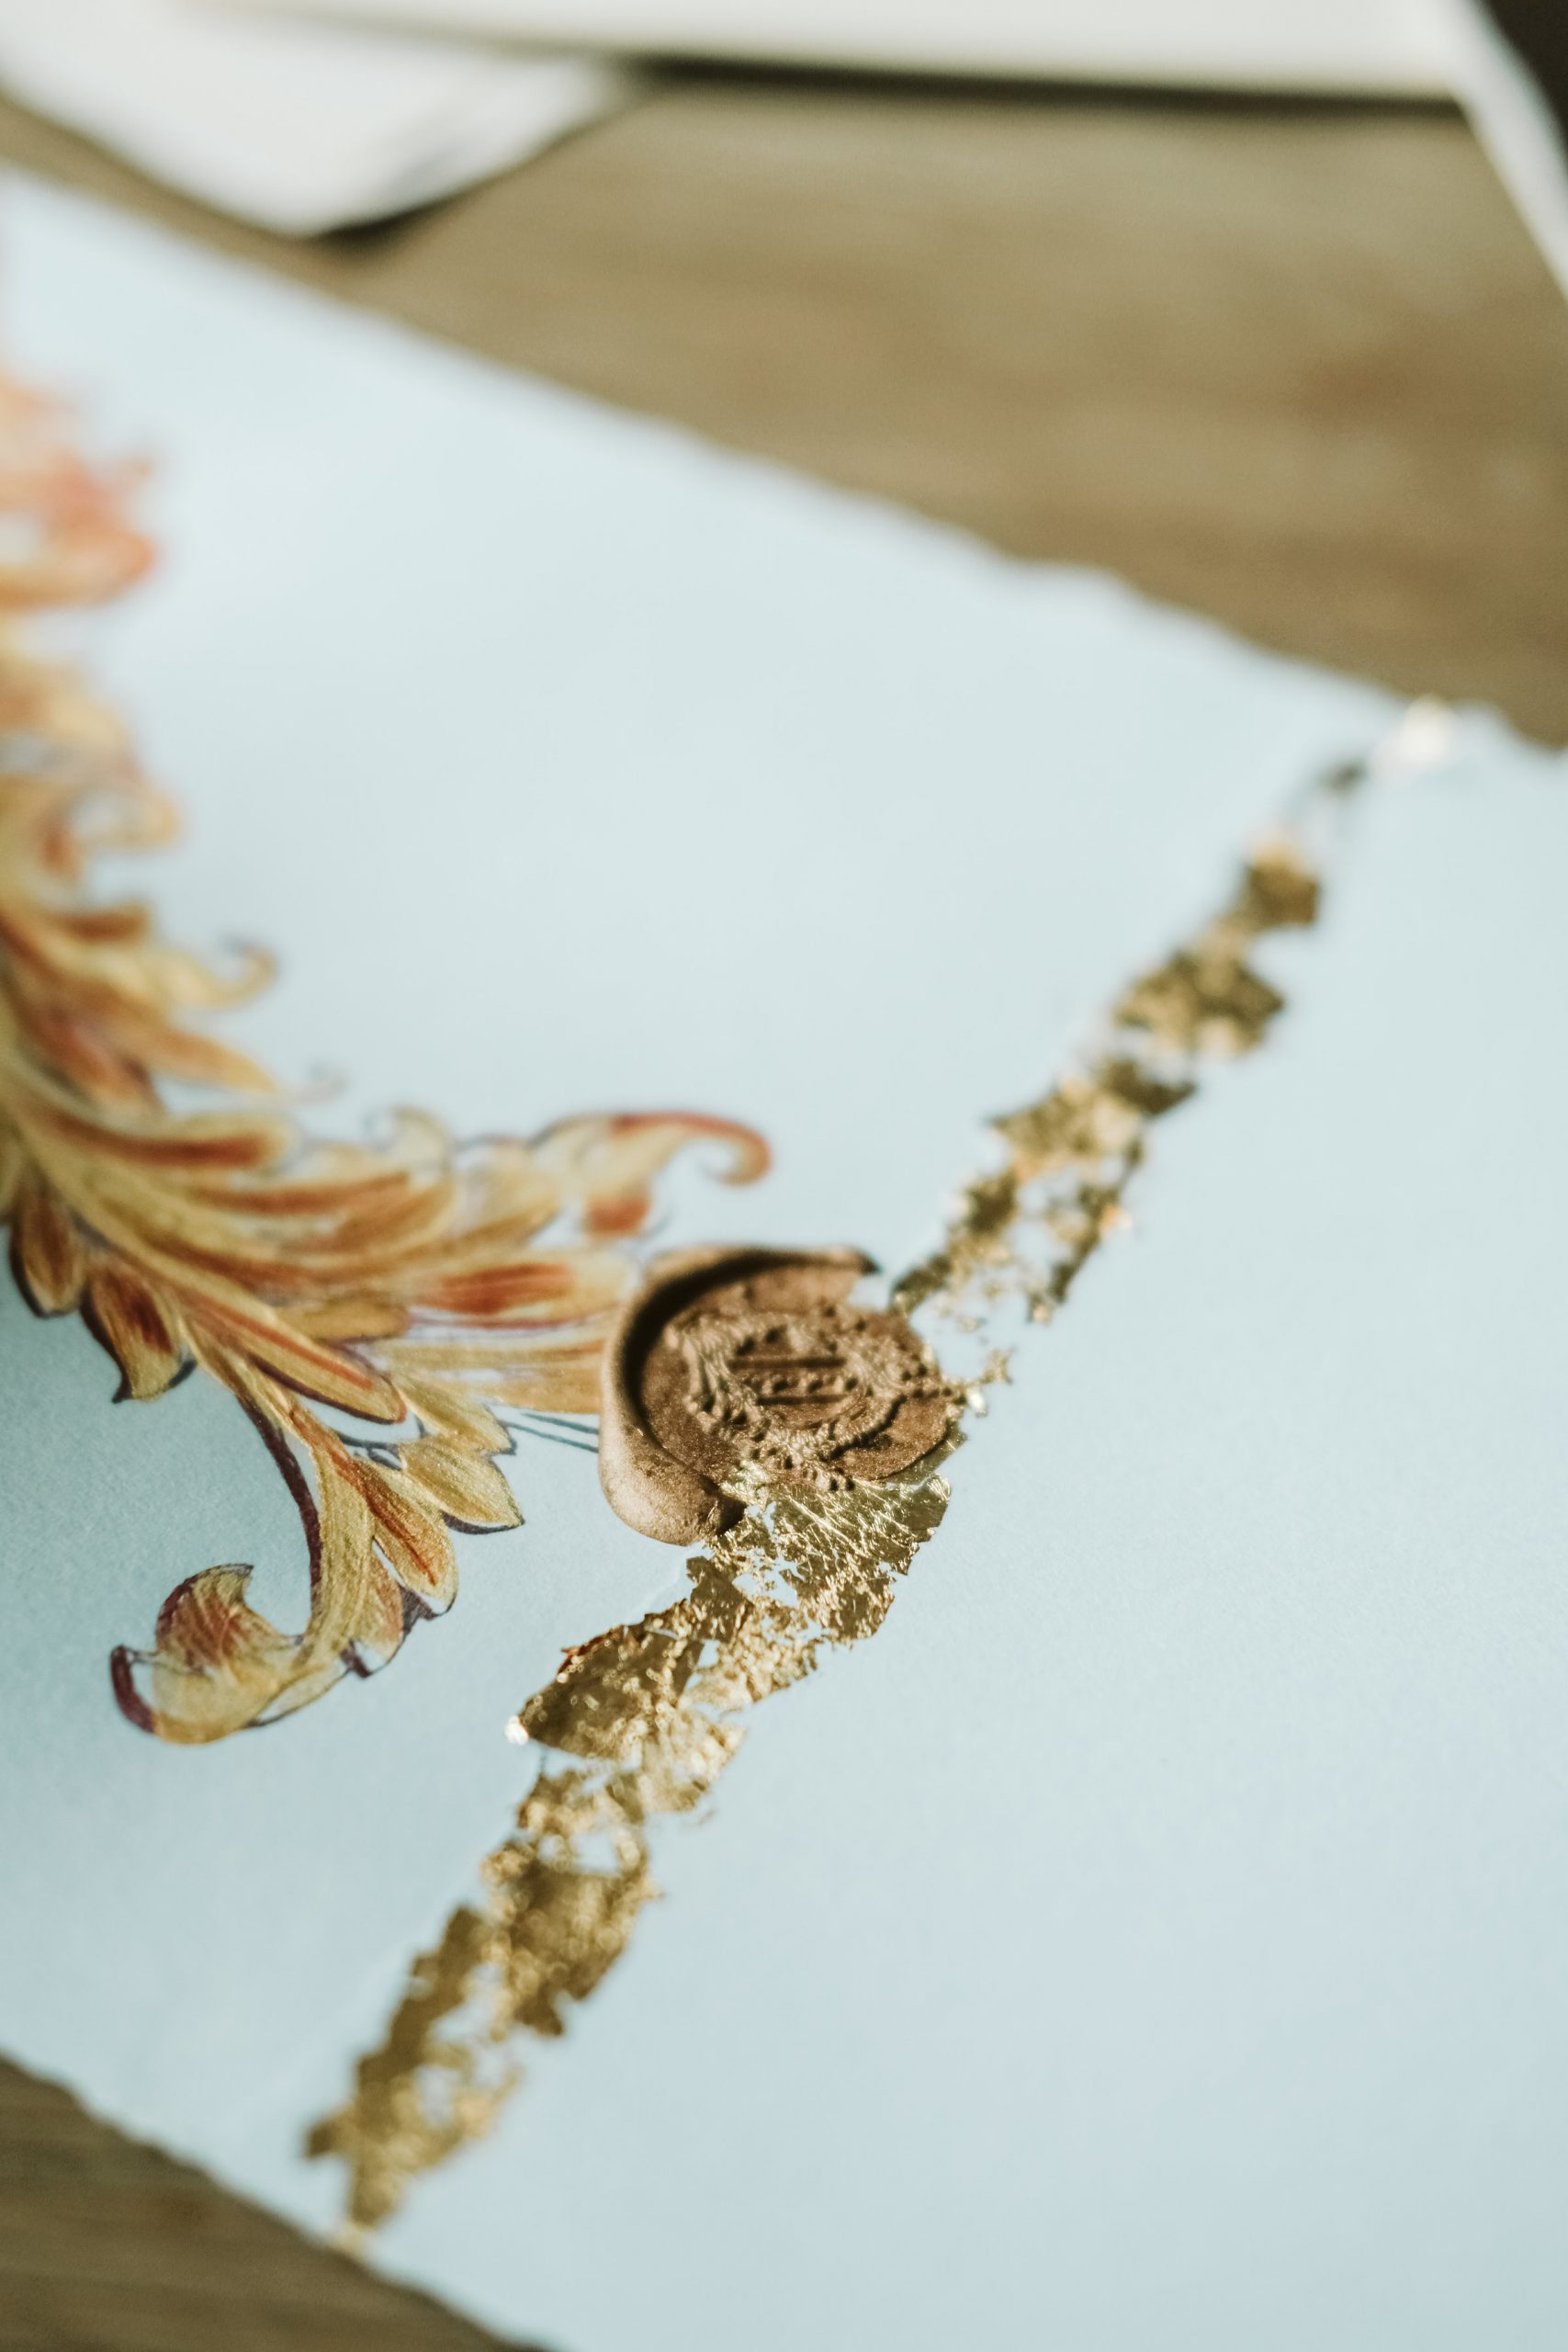 Hand Painted gold and red baroque style wedding stationery featuring a pale blue envelope